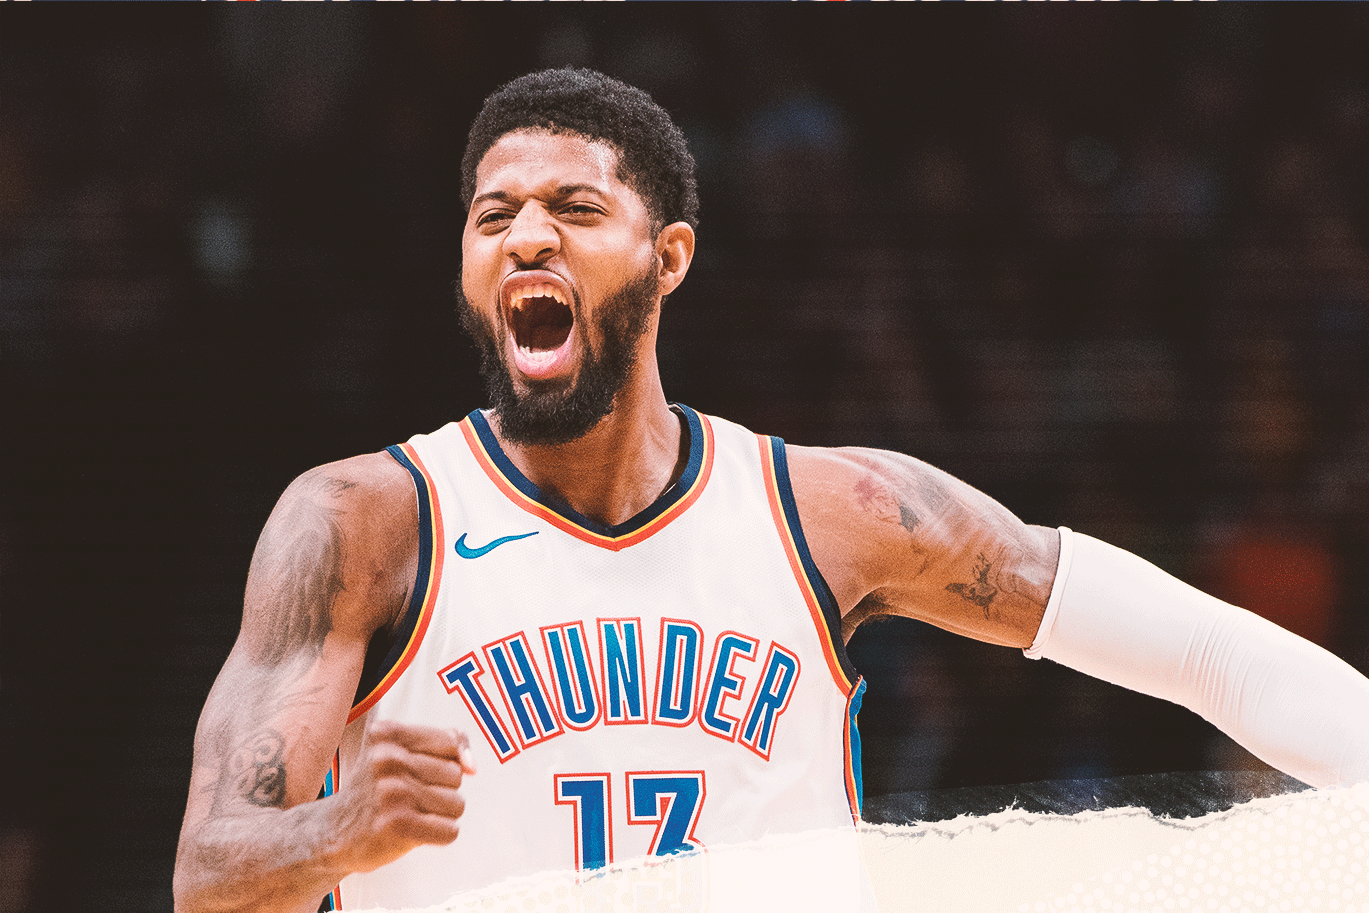 Paul George: Welcome To Loud City, An Oklahoma City Thunder Community